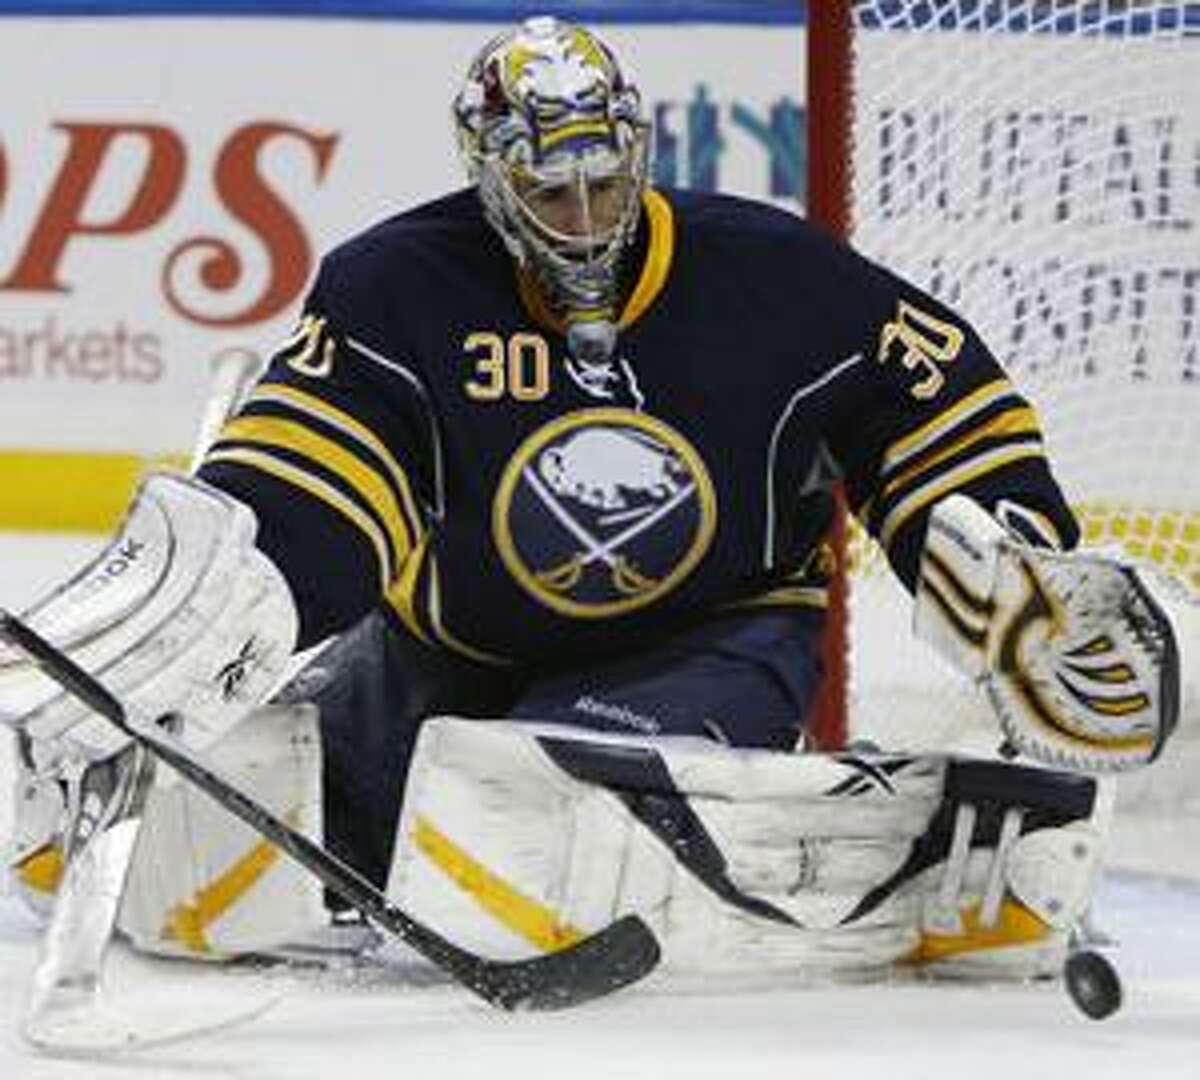 Buffalo Sabres goalie Ryan Miller makes a save against the Boston Bruins during the second period of a first-round NHL playoff hockey game in Buffalo, N.Y., Friday, April 23, 2010. (AP Photo/ David Duprey)